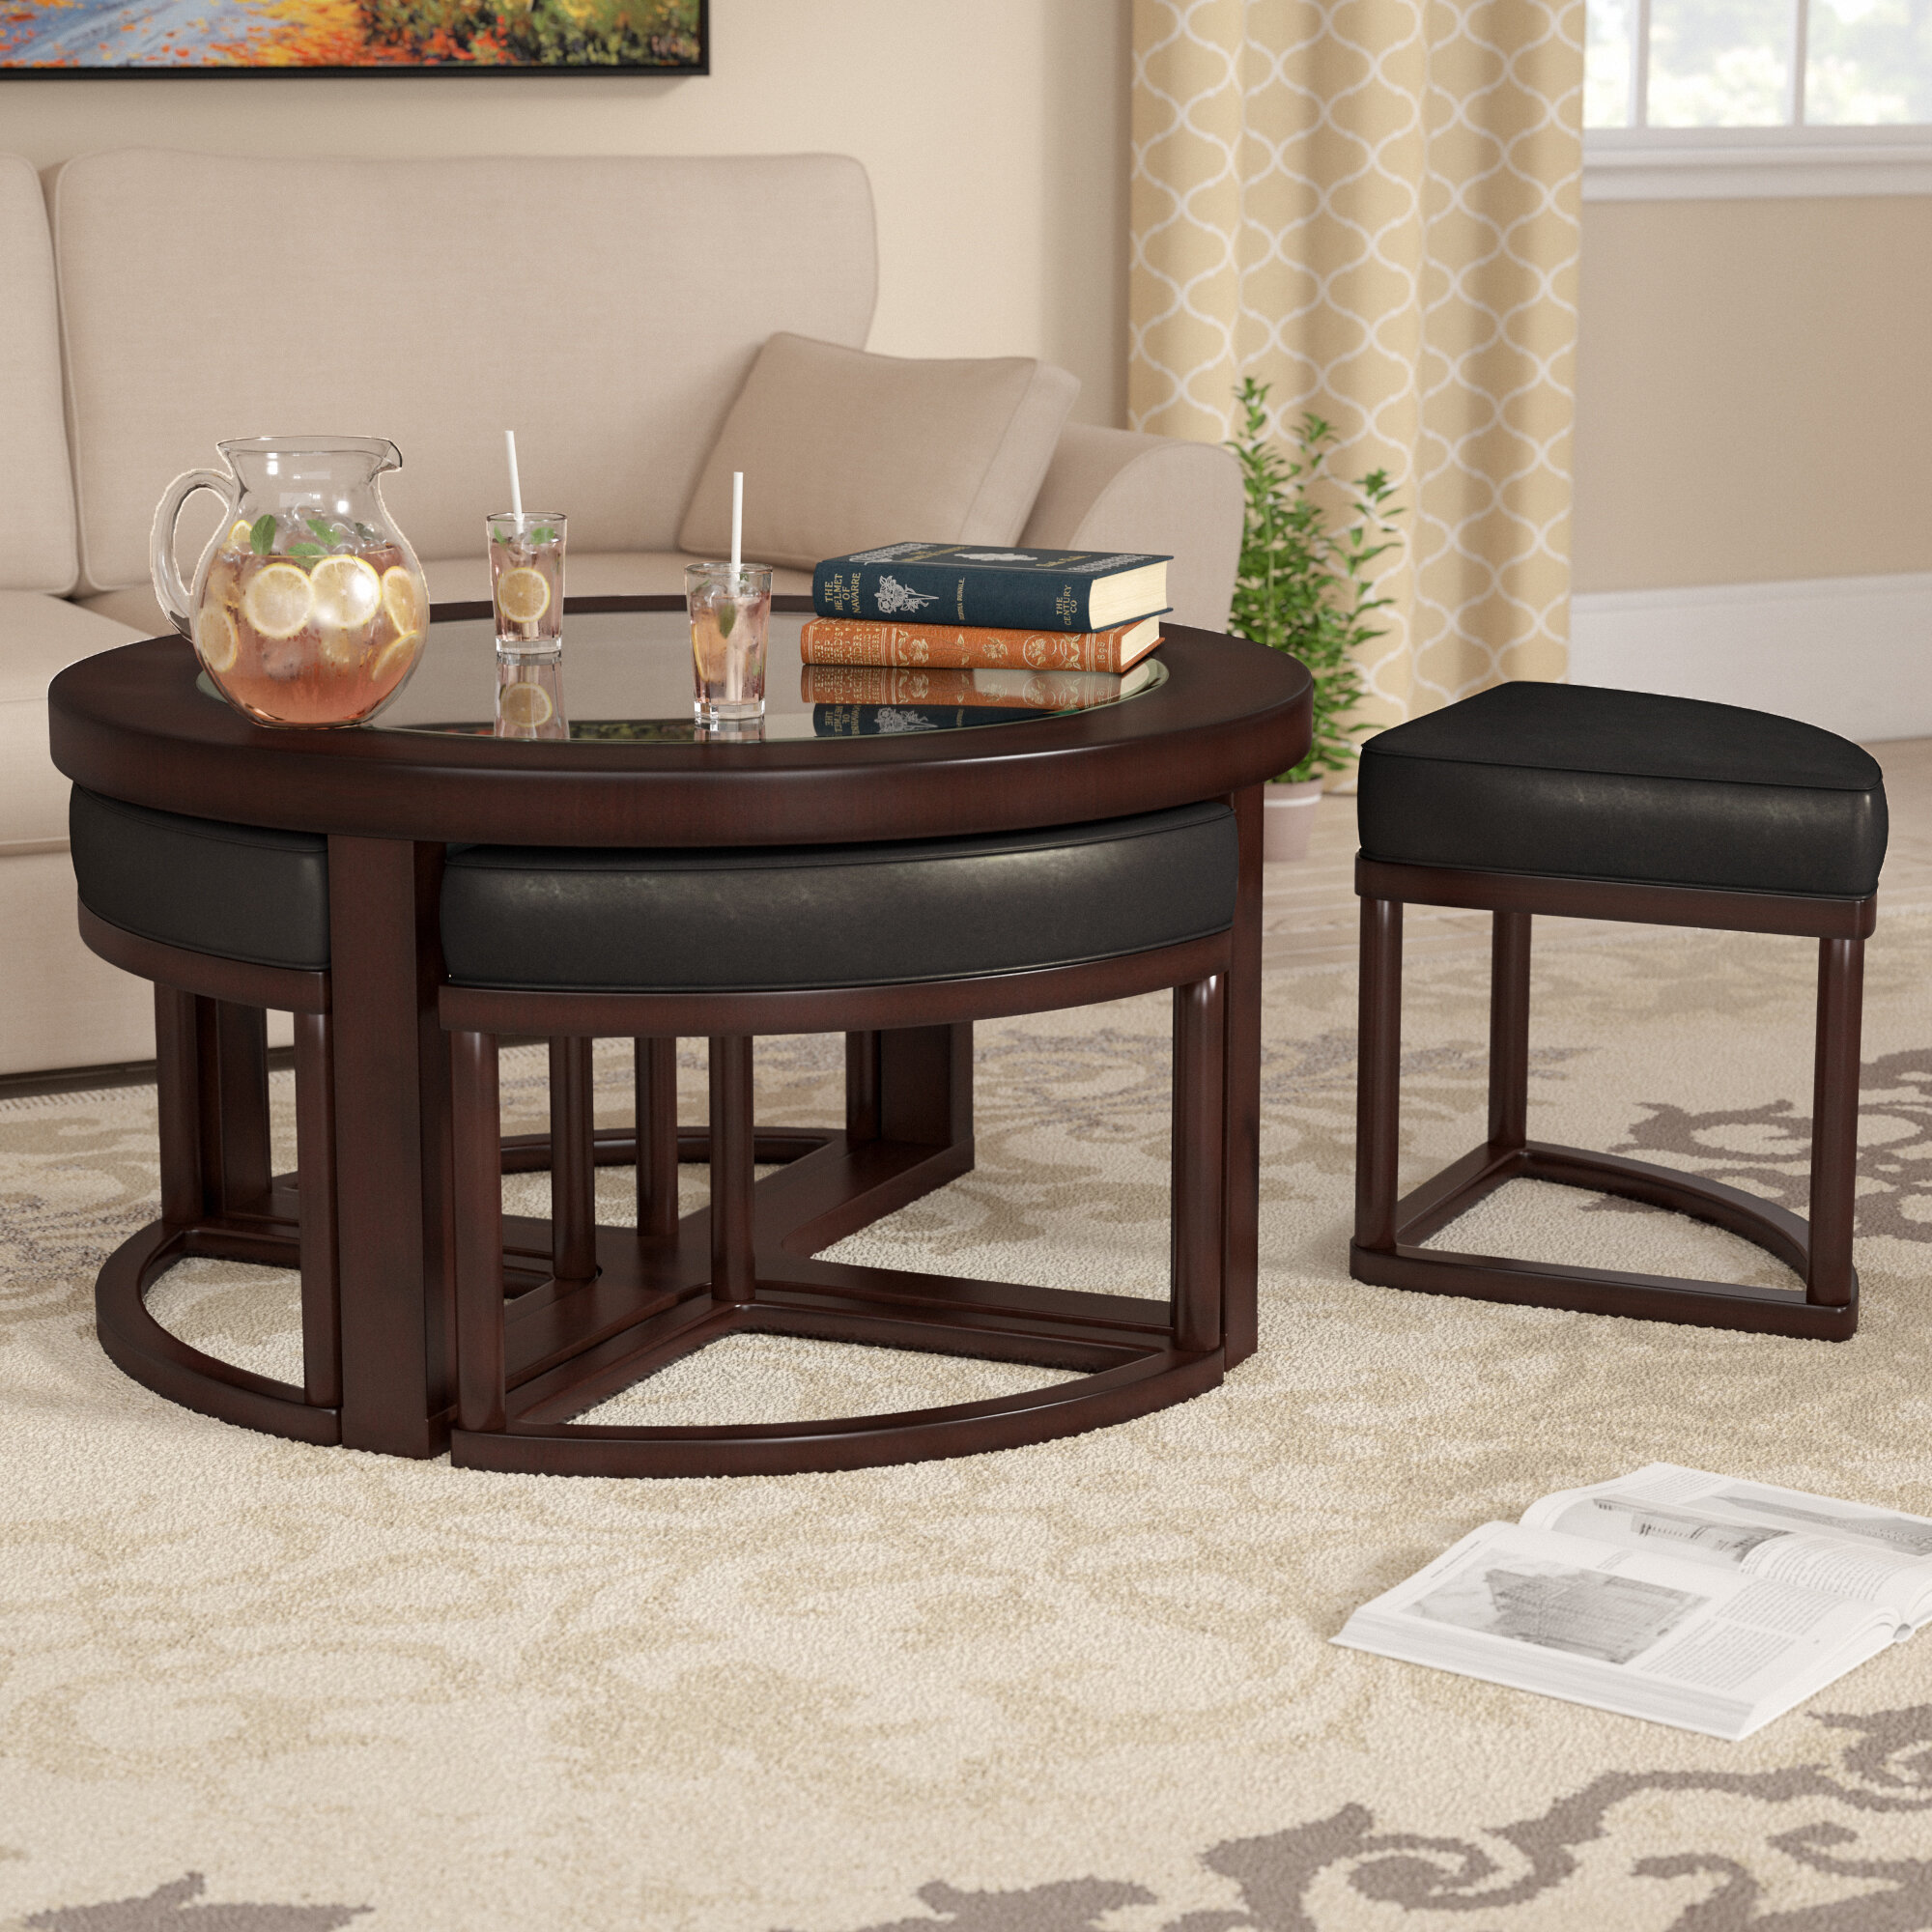 Red Barrel Studio Plumwood Coffee Table With Nested Stools U0026 Reviews |  Wayfair